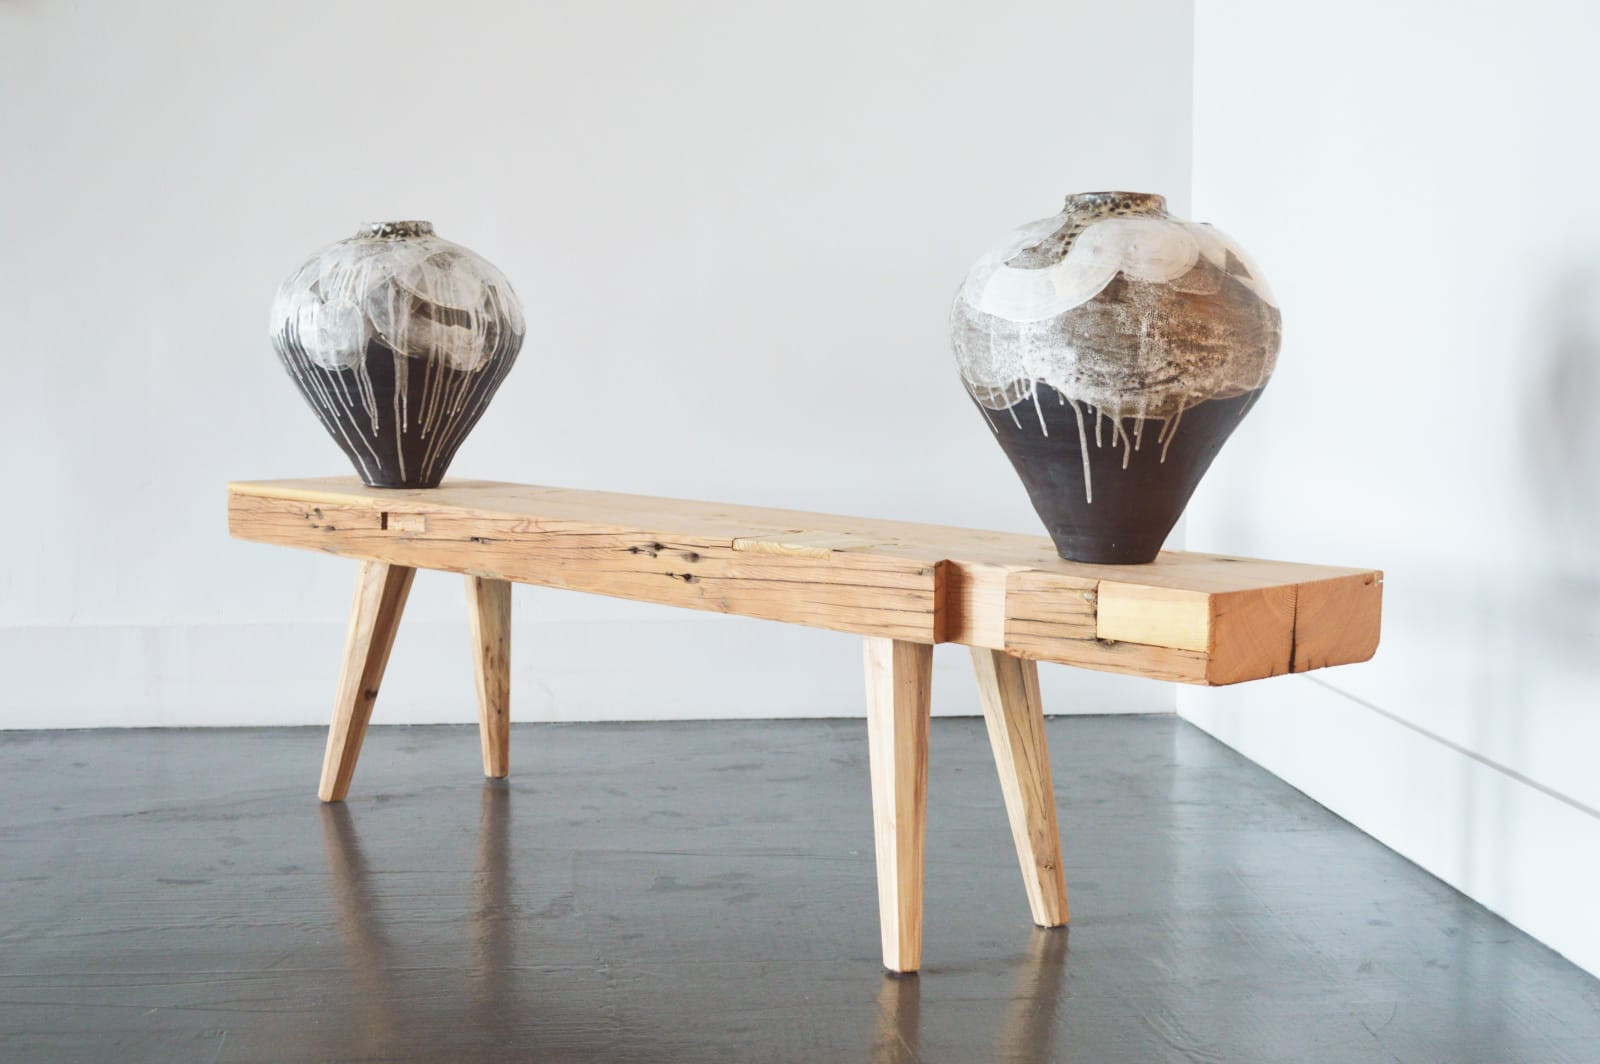 Nate Cassie Twin vessels with a landscape reflecting the moon, 2021 Black stoneware with white slip and crackle glaze 17 x 14 x 14 in each 43.18 x 35.56 x 35.56 cm